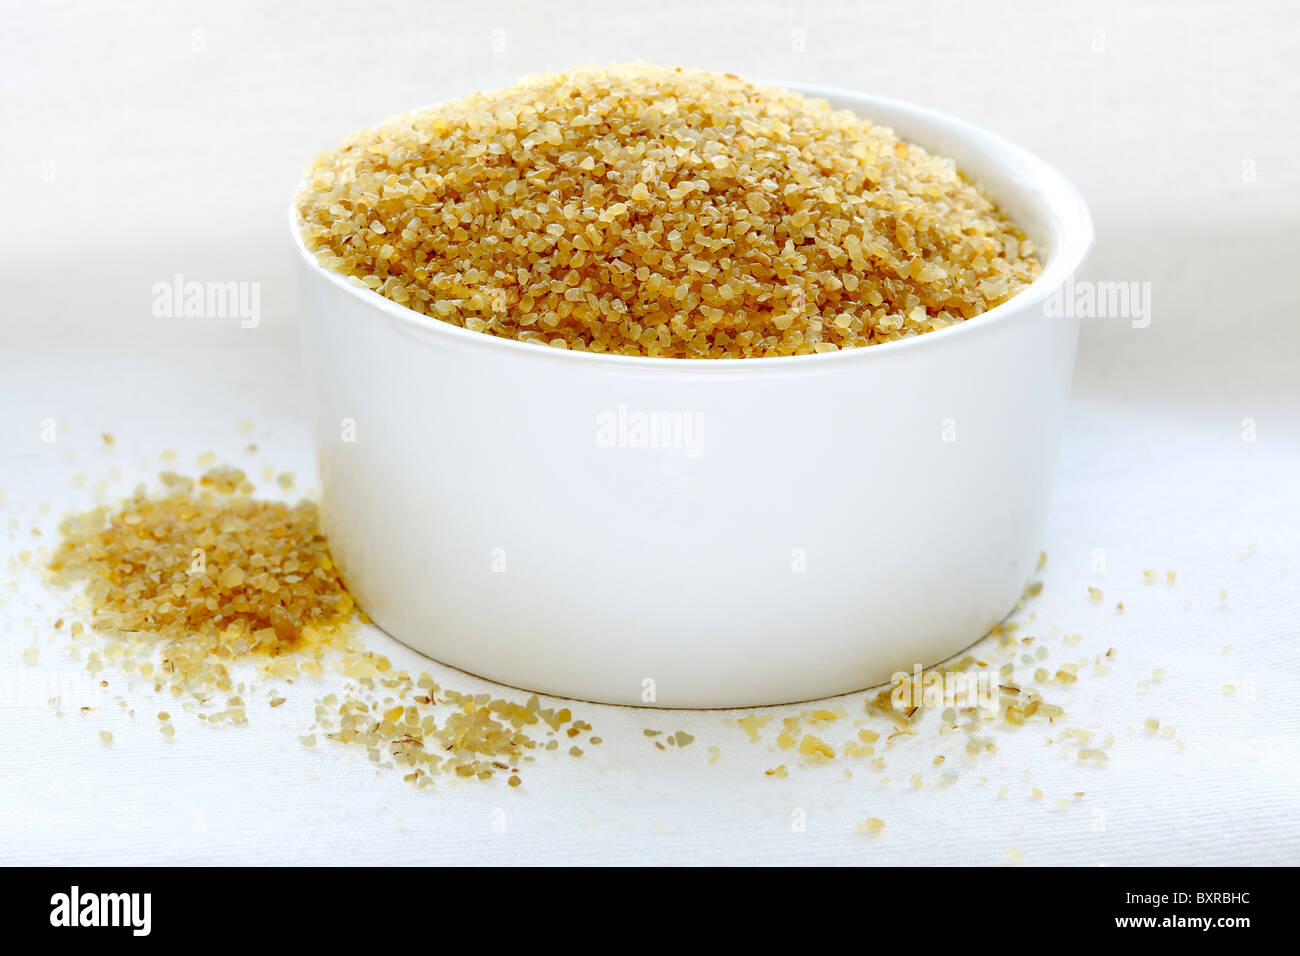 Bulgur Wheat - Stock Image